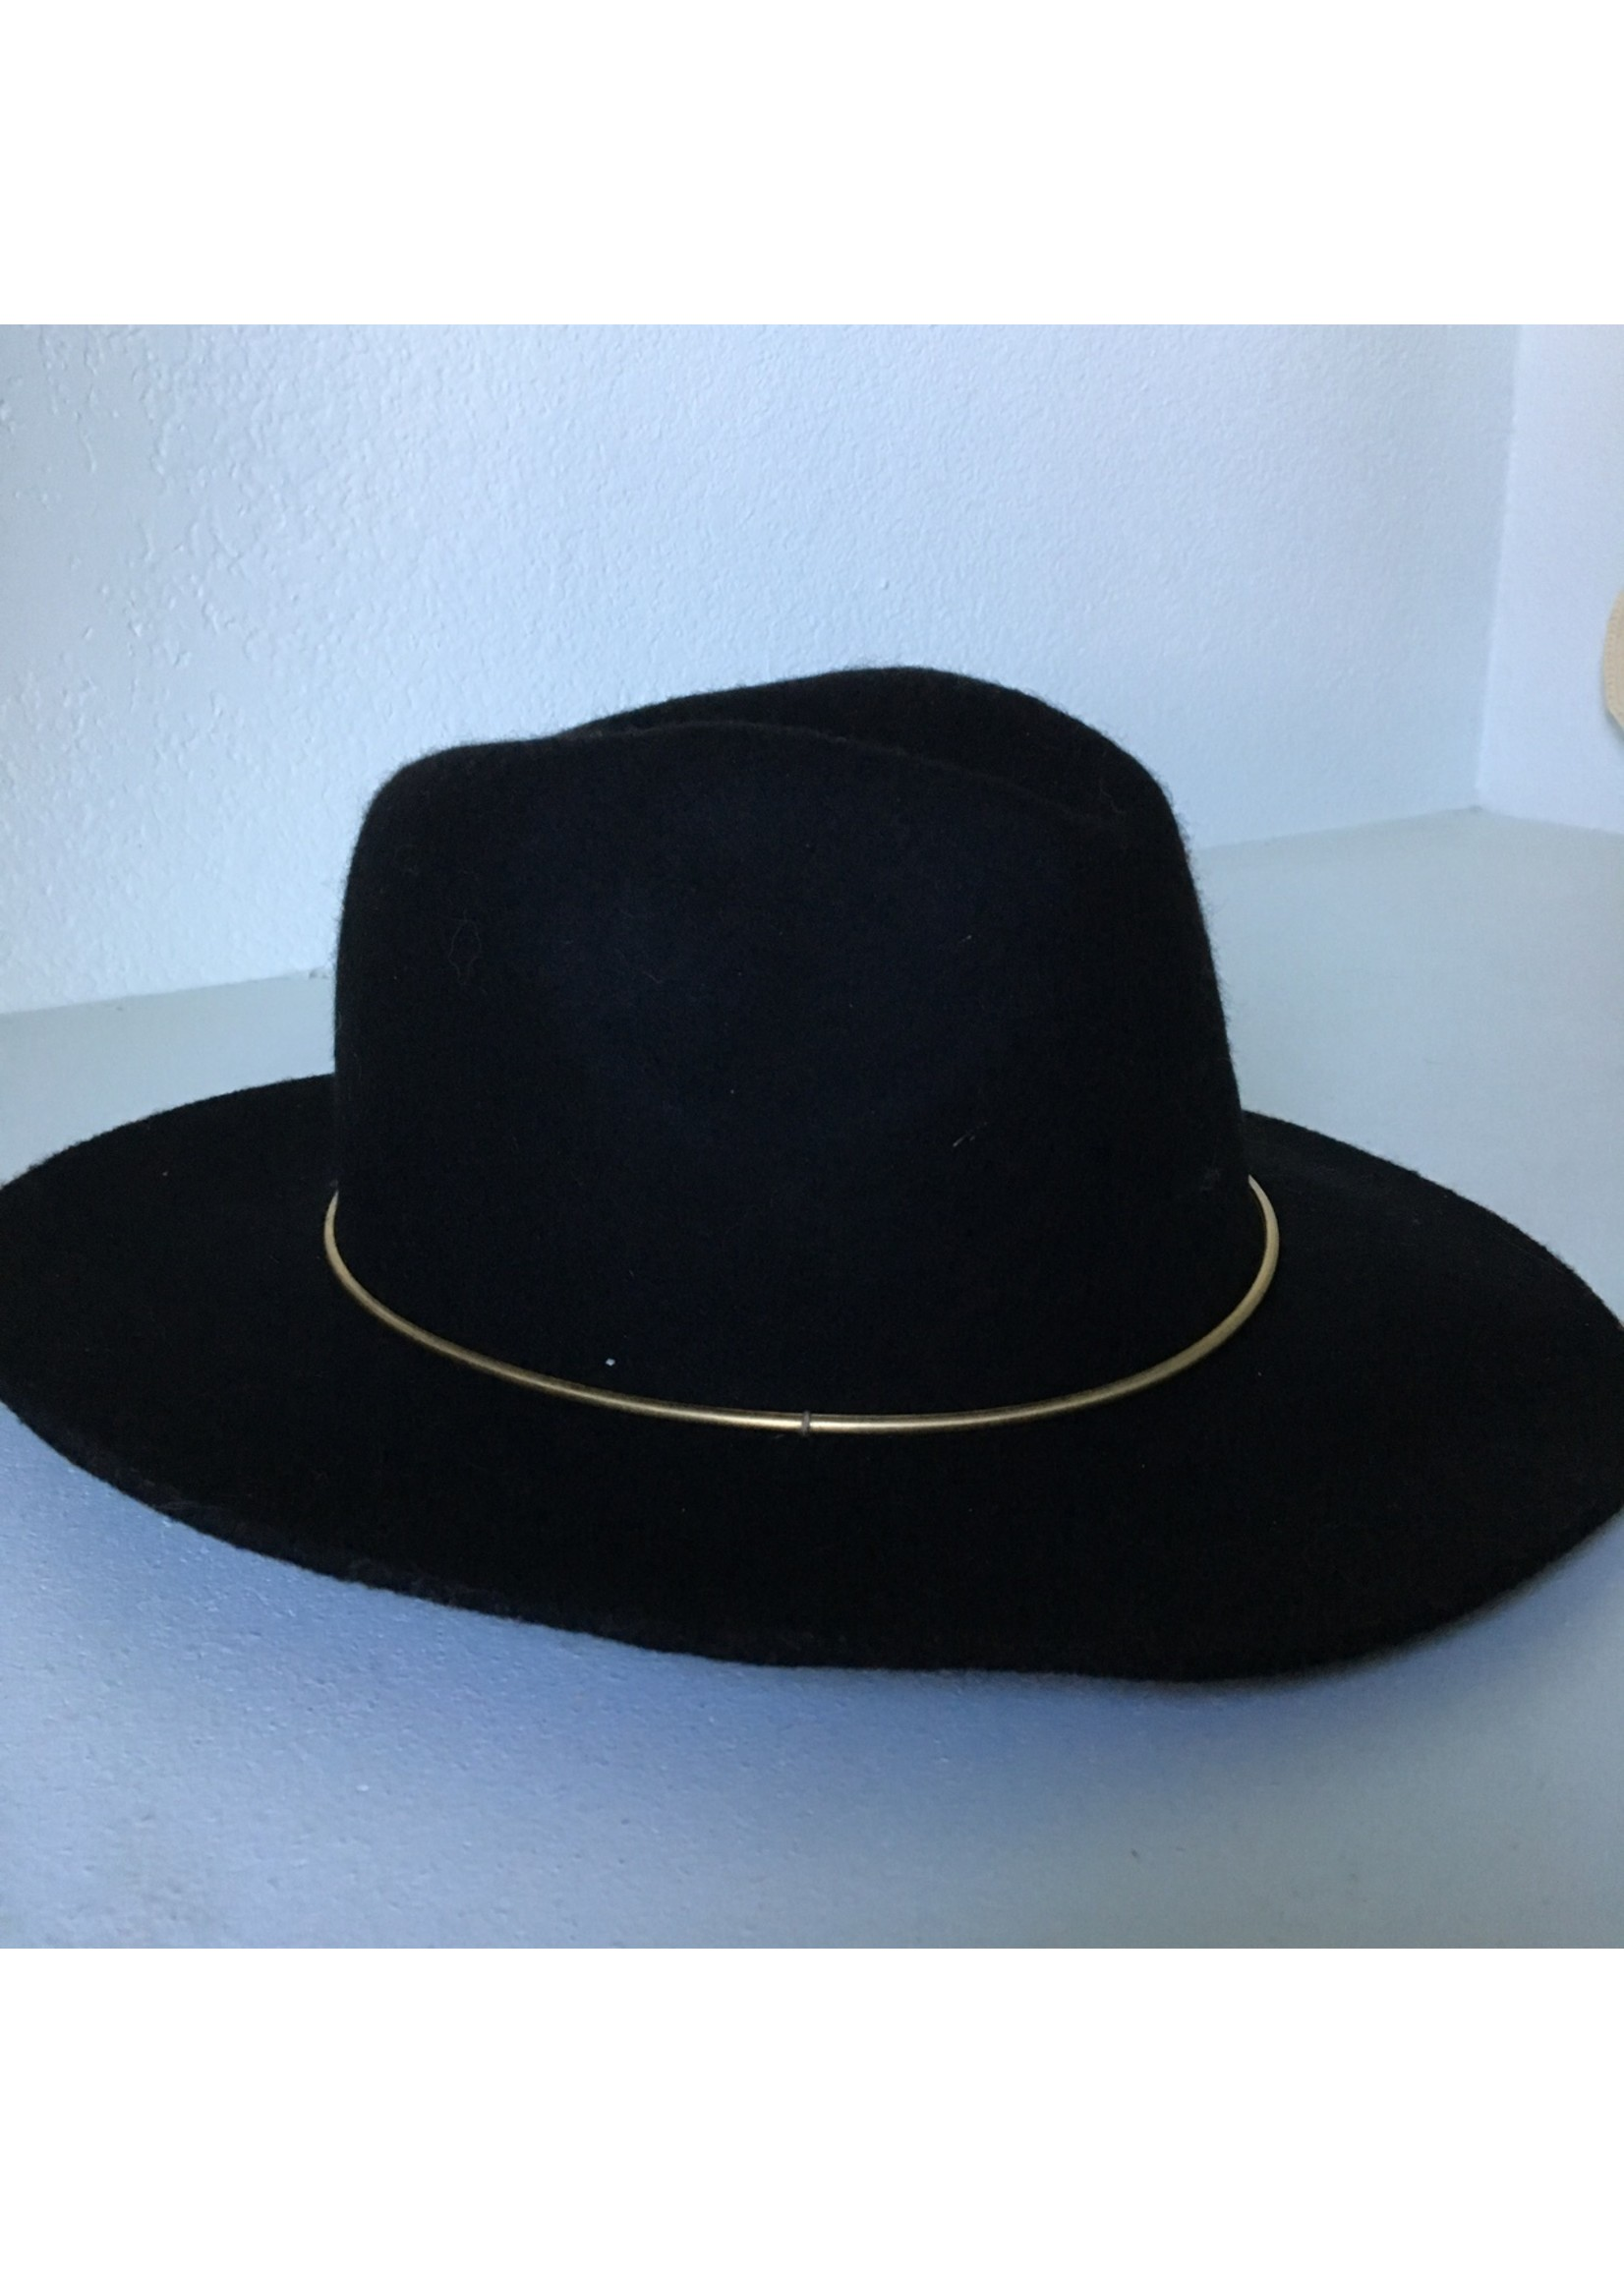 anzell Black Fedora with Gold Detail -Wool